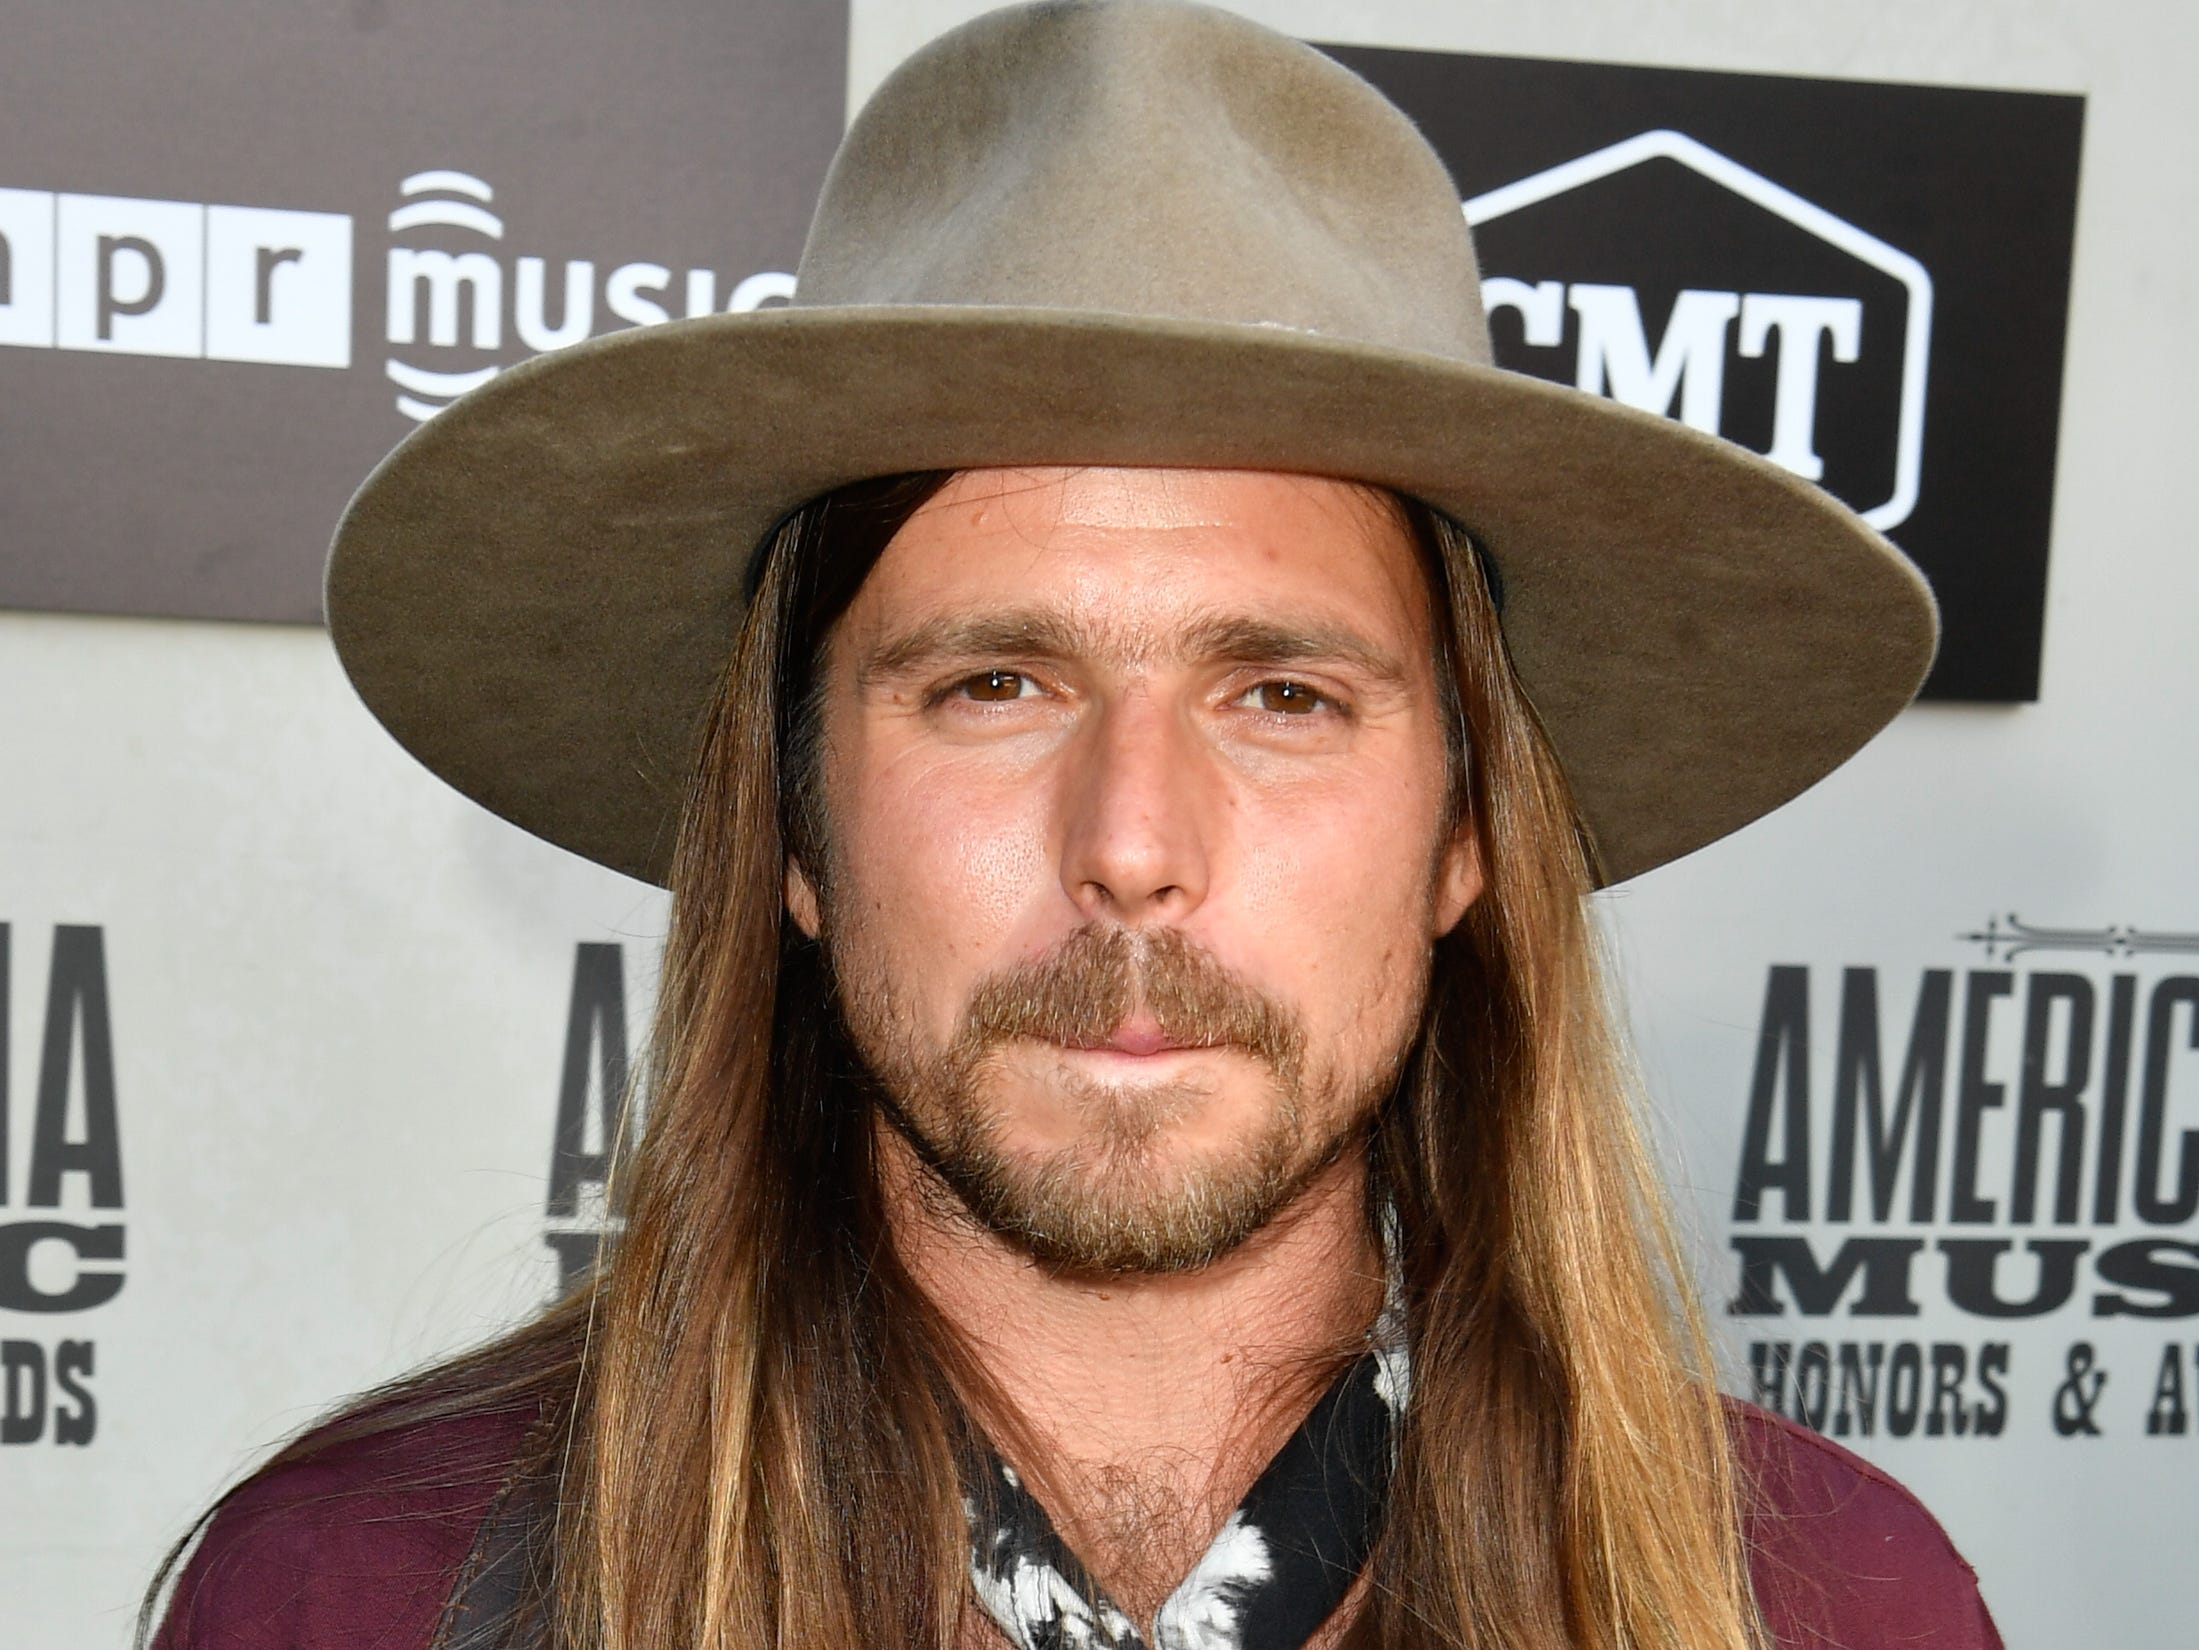 Lukas Nelson poses on the red carpet before the 2018 Americana Honors and Awards show at the Ryman Auditorium in Nashville, Tenn., Wednesday, Sept. 12, 2018.